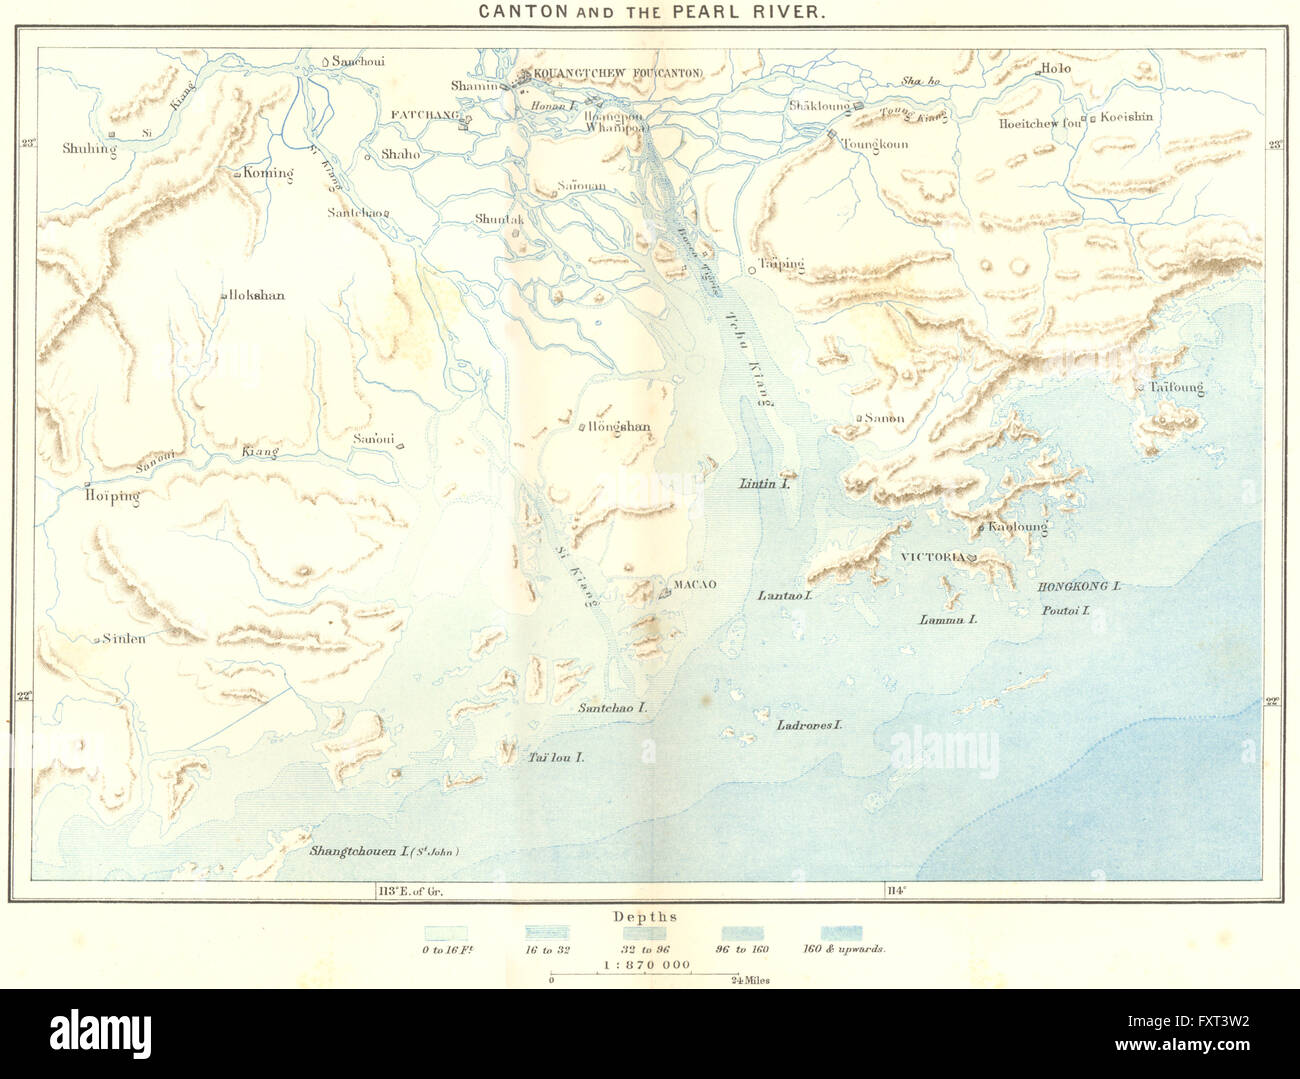 canton of neuchatel with cities and towns map » ..:: Edi Maps ...